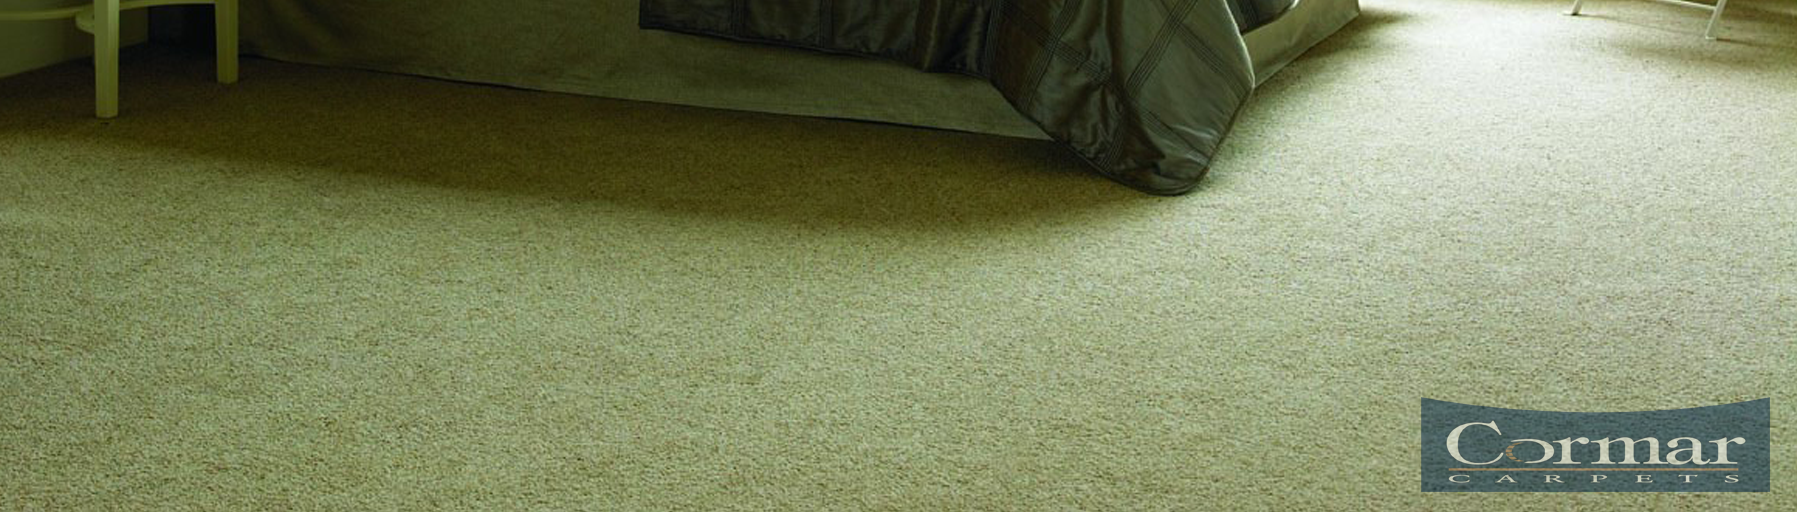 Carpet in Stoke, Stoke-on-Trent